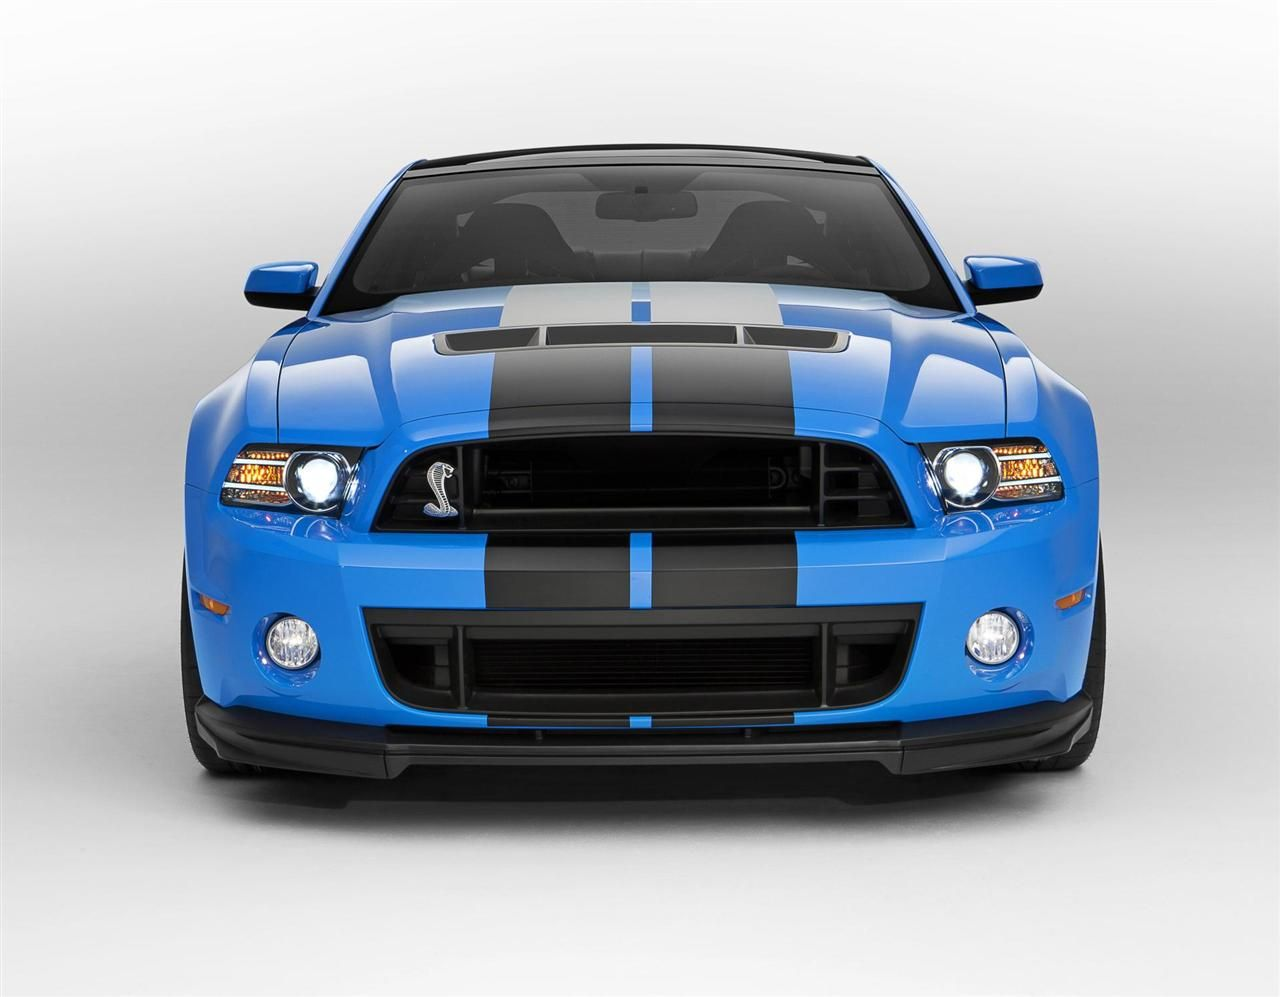 Its A 2013 Shelby Mustang Gt500 Ford Mustang Shelby Gt500 Ford Mustang Shelby Shelby Mustang Gt500